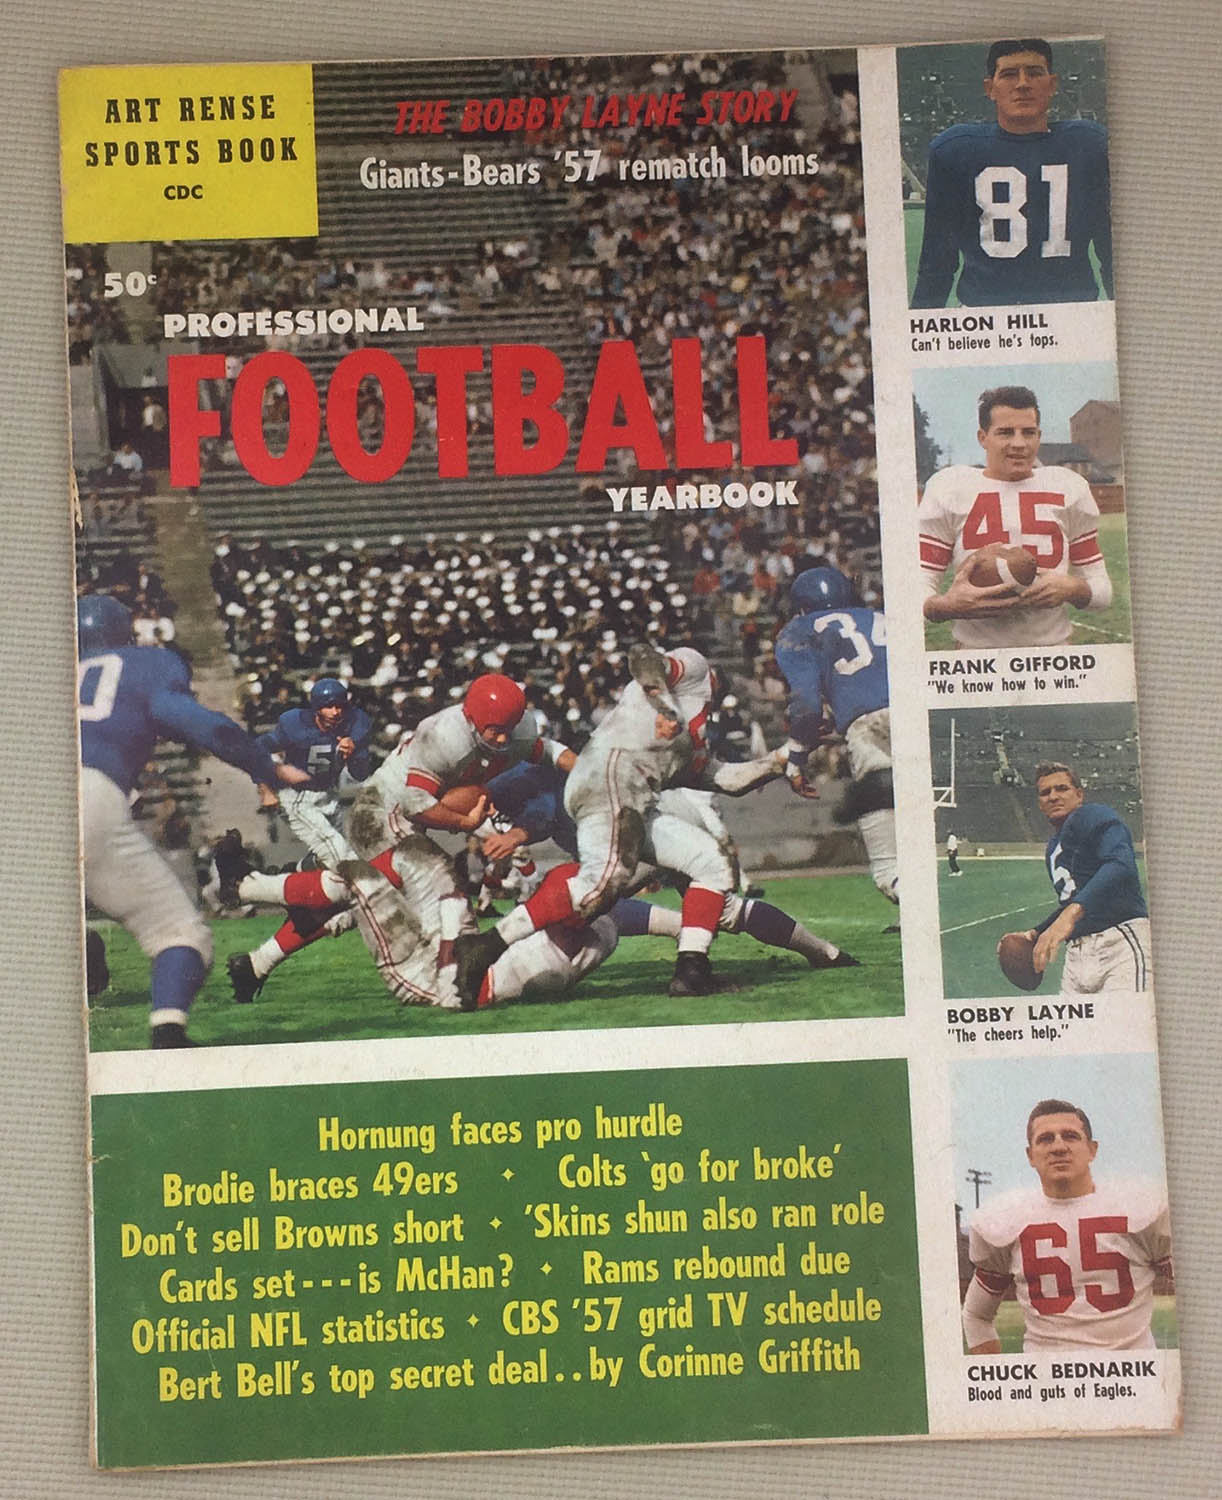 Professional Football Yearbook 1957